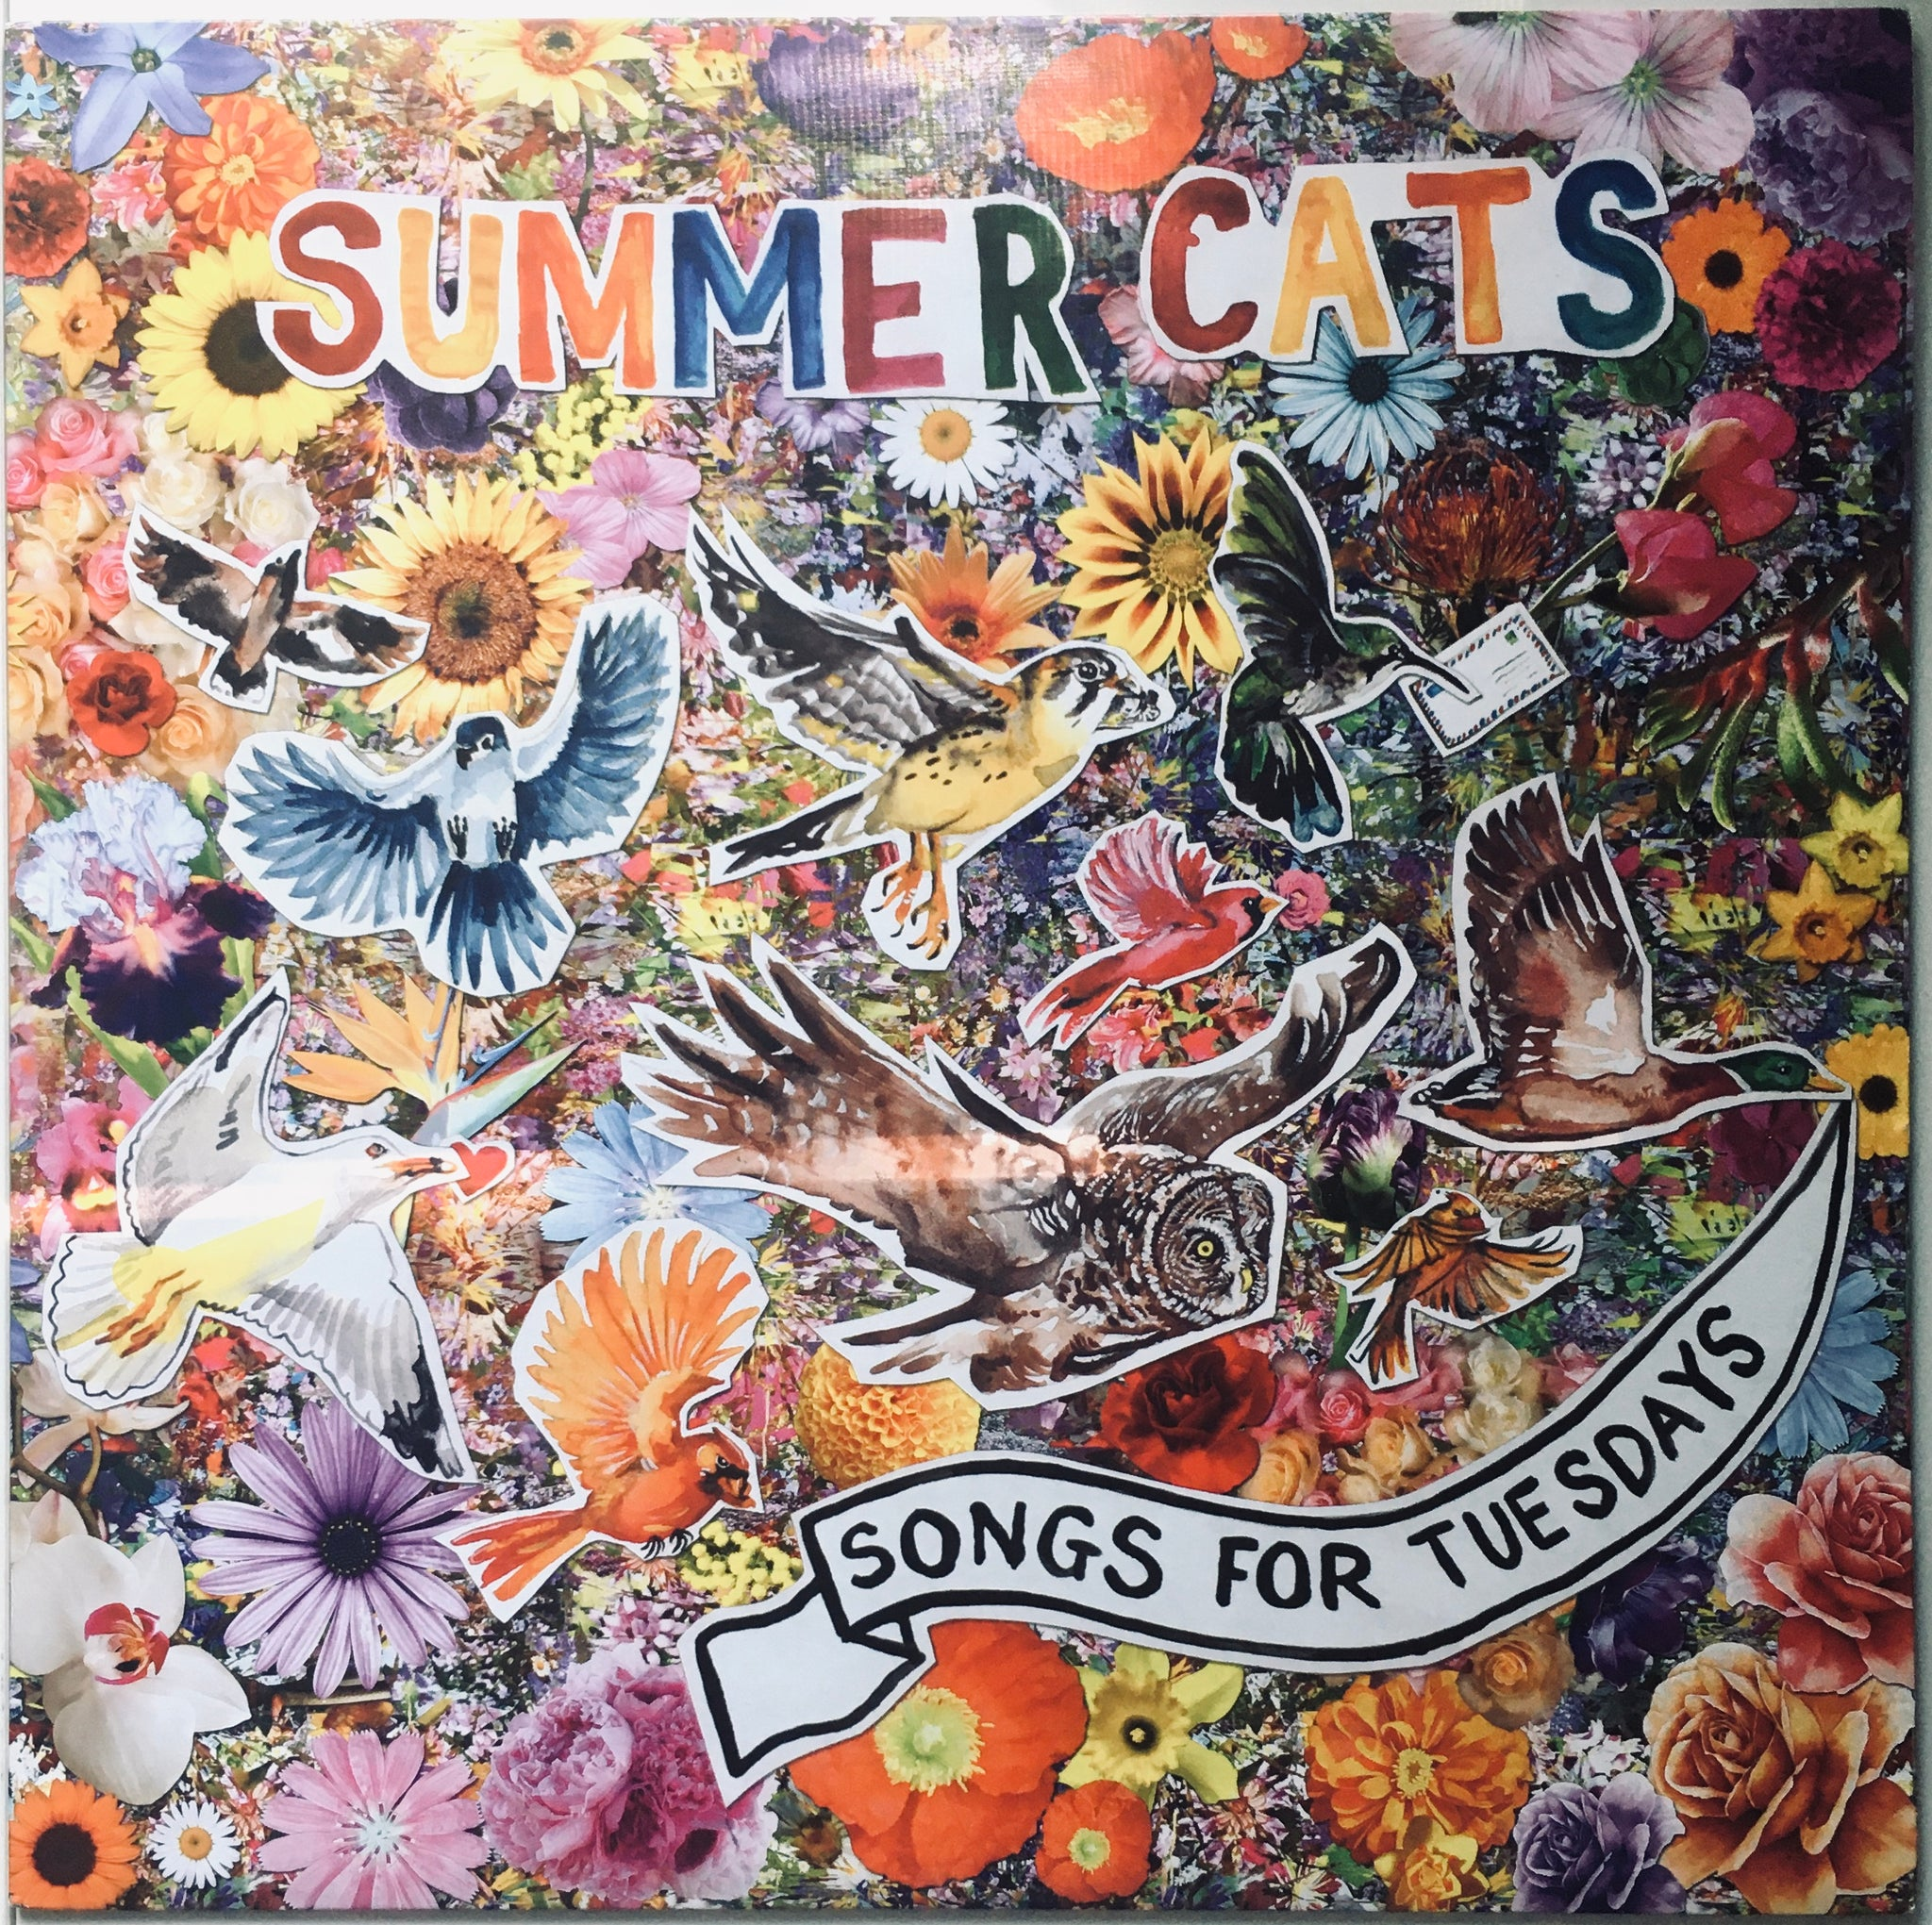 "Summer Cats ""Songs For Tuesdays"" LP (2009)"